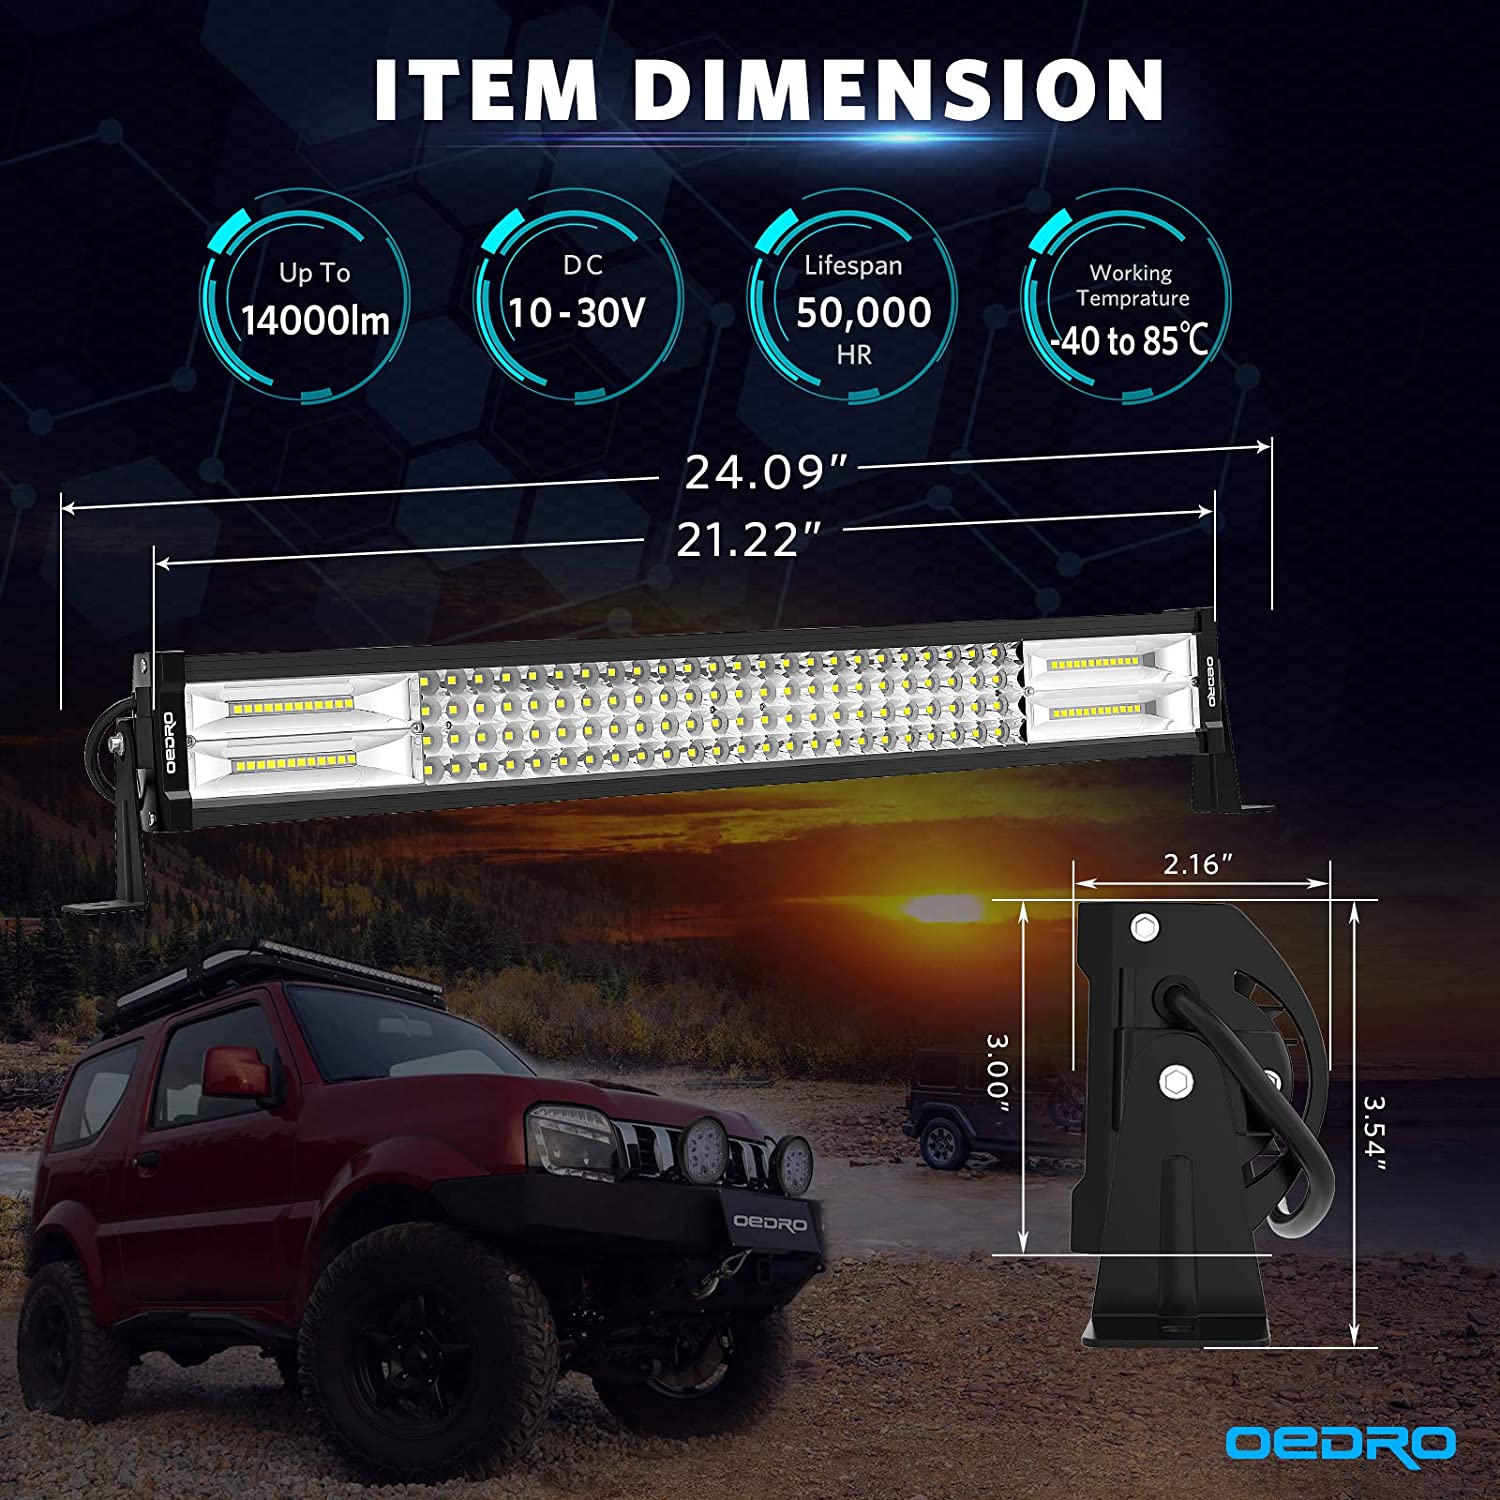 LED Light Bar OEDRO 22 Inch 520W 36400LM Quad-Rows Spot Flood Combo Led Lights Work Lights+Wiring Harness IP68 Grade Off Road Light 12V 24V Fit for Pickup Jeep SUV 4WD 4X4 ATV UTE Truck Tractor etc